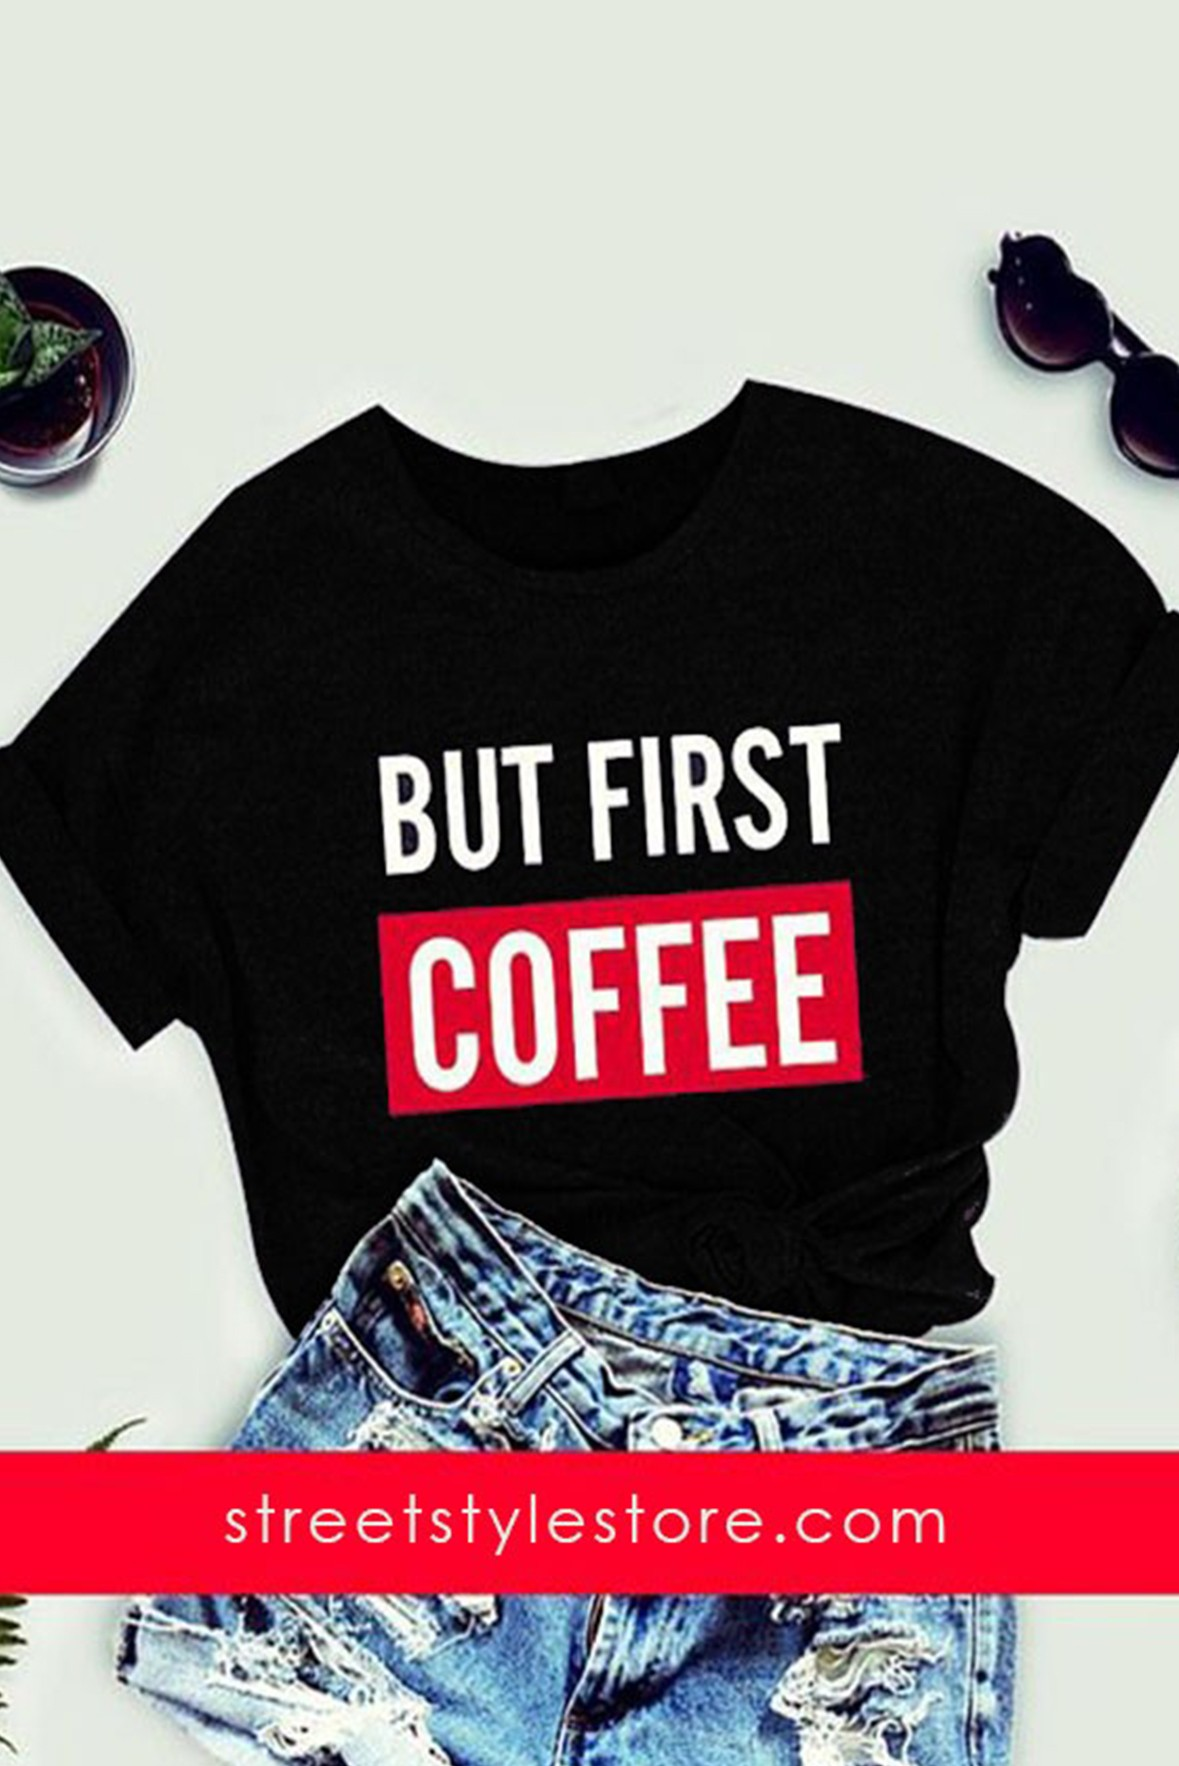 But first coffee Black T-shirt